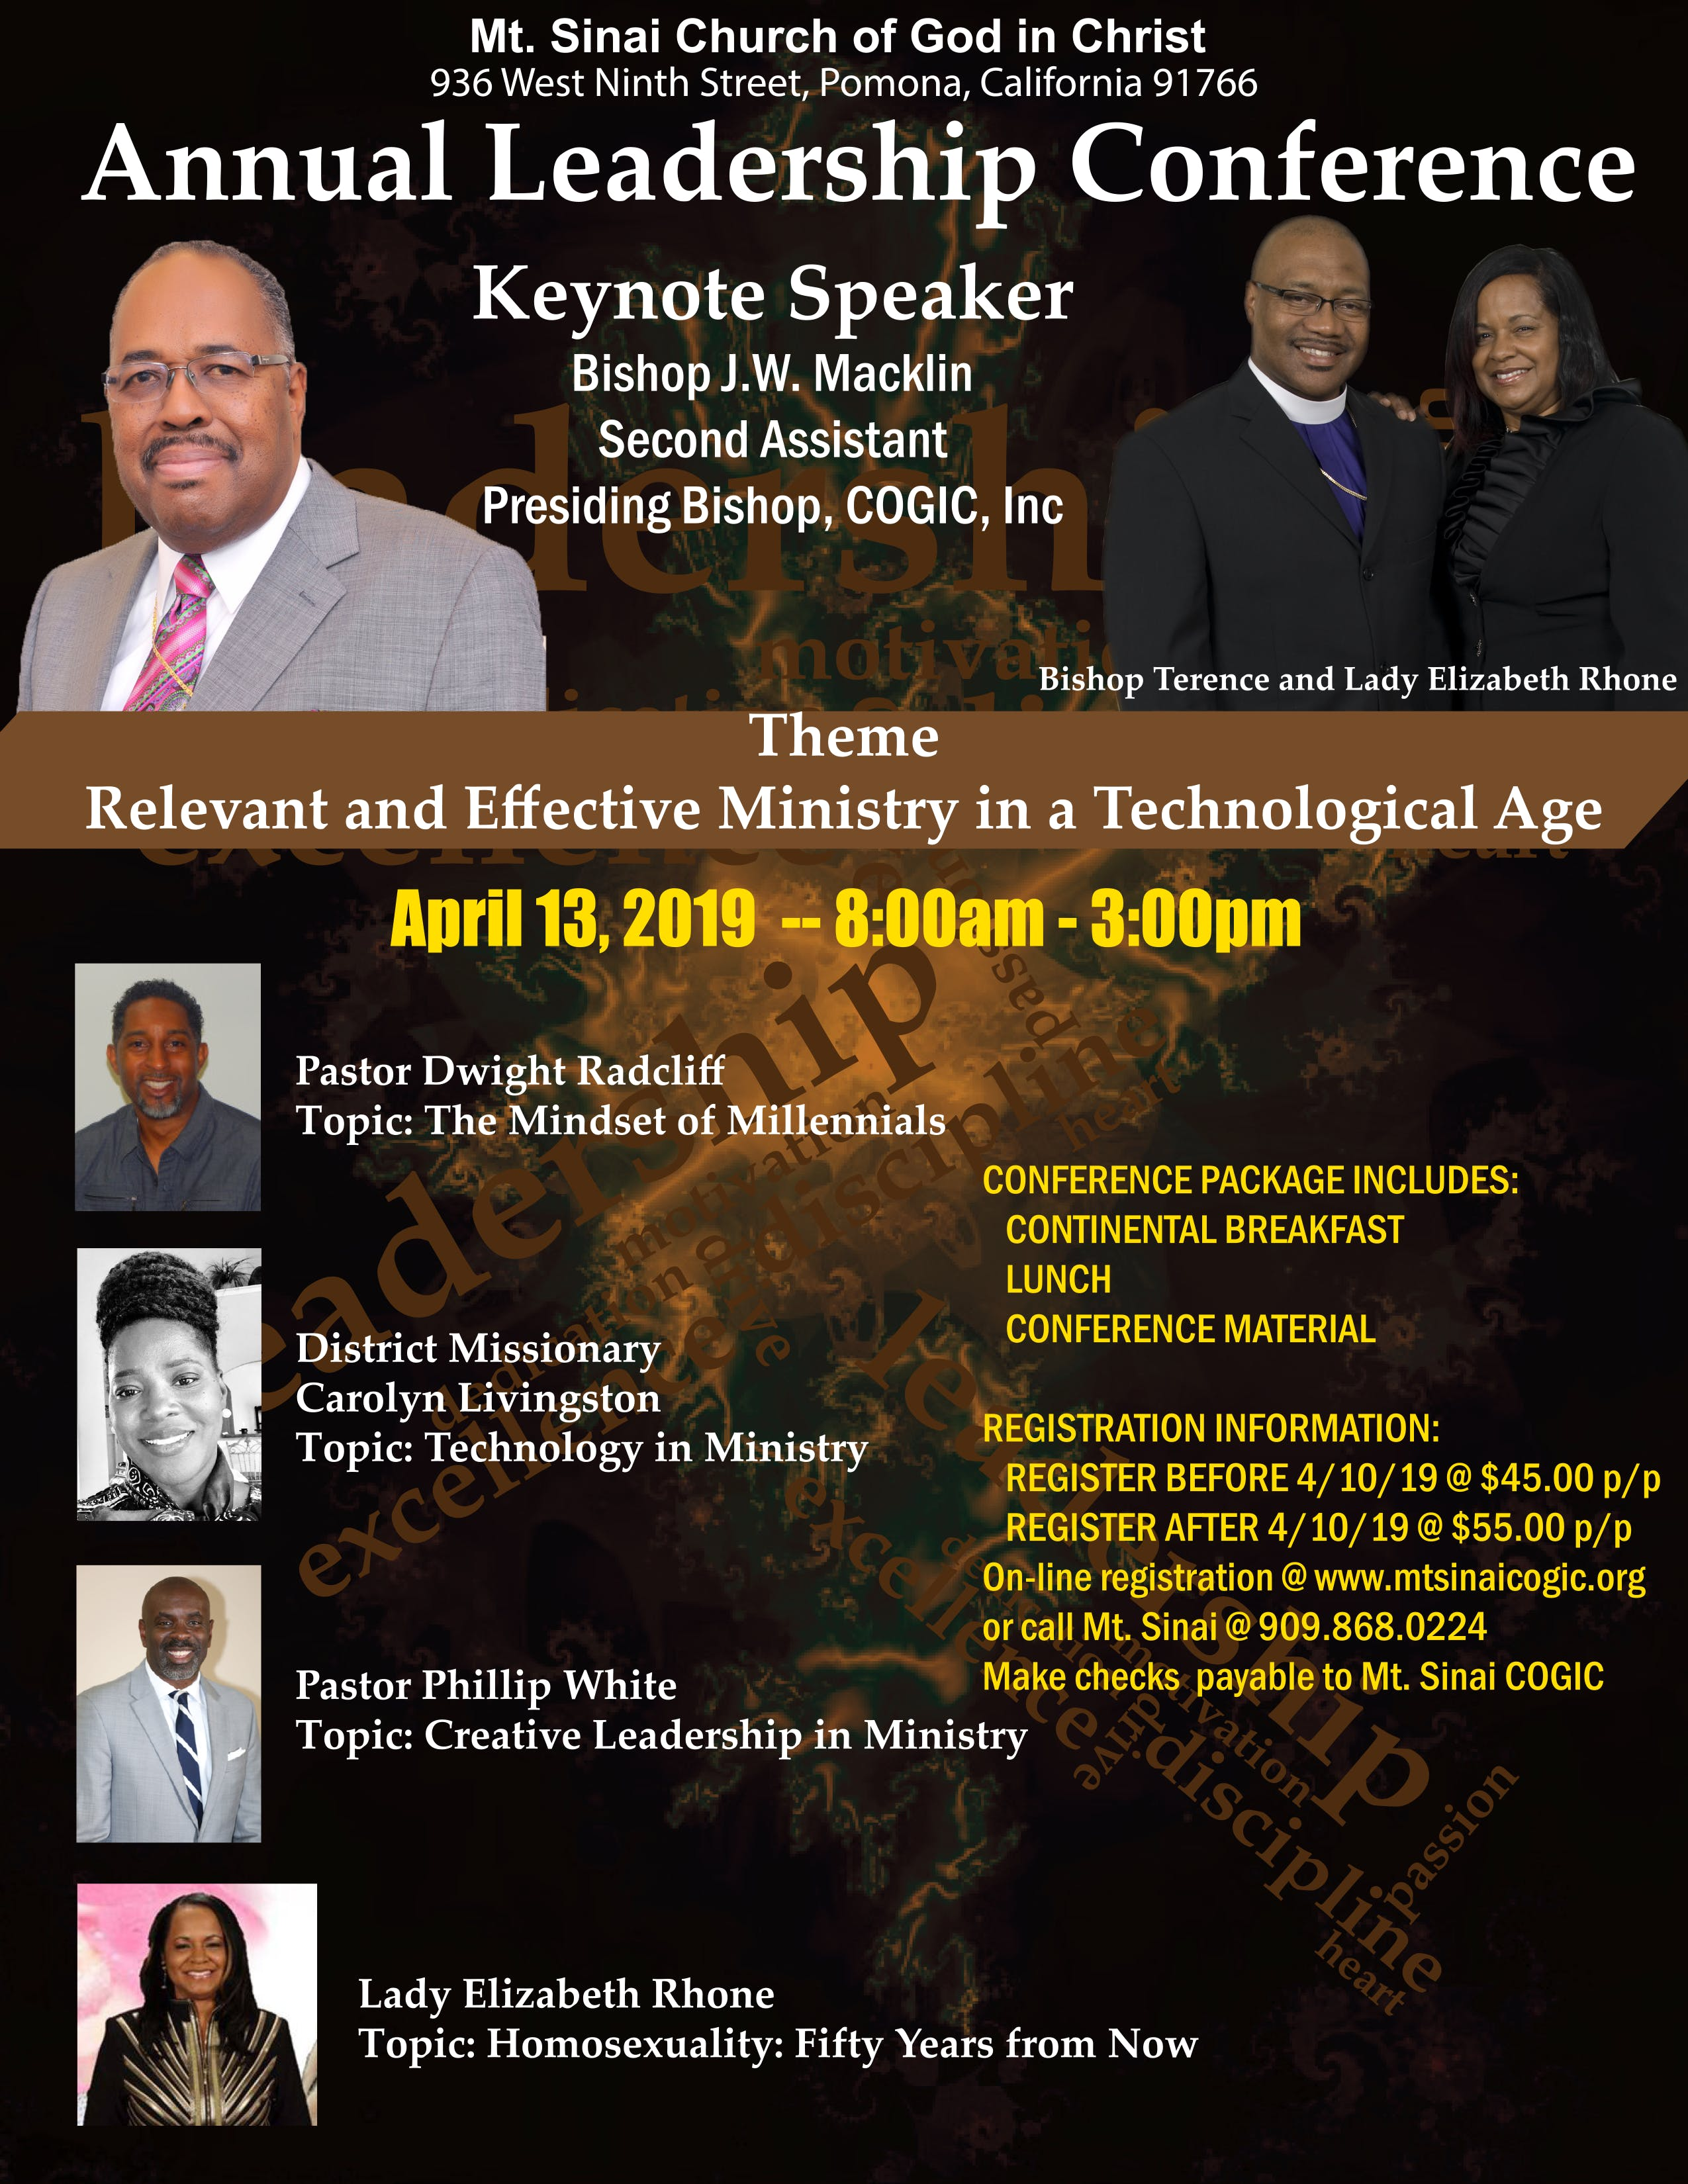 Mt Sinai COGIC - Annual Leadership Conference - 13 APR 2019